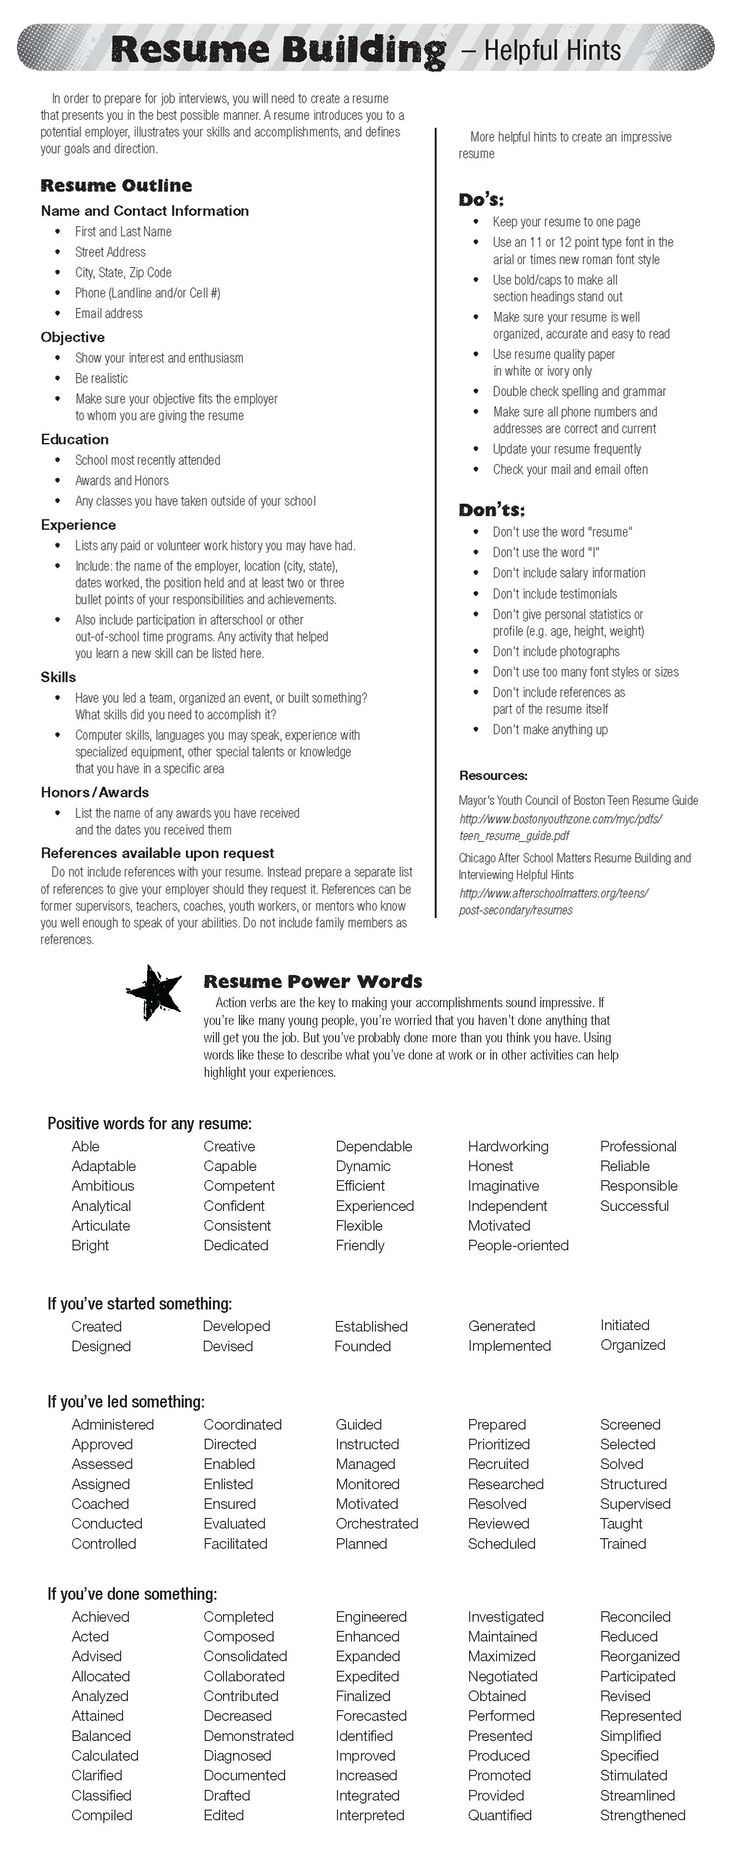 Opposenewapstandardsus  Splendid  Ideas About Resume On Pinterest  Cv Format Resume Cv And  With Engaging  Ideas About Resume On Pinterest  Cv Format Resume Cv And Resume Templates With Astonishing Digital Resumes Also College Admission Resume Examples In Addition Dental Resume Template And Fill In The Blank Resume Pdf As Well As What Should A Resume Cover Letter Say Additionally Resume With Skills From Pinterestcom With Opposenewapstandardsus  Engaging  Ideas About Resume On Pinterest  Cv Format Resume Cv And  With Astonishing  Ideas About Resume On Pinterest  Cv Format Resume Cv And Resume Templates And Splendid Digital Resumes Also College Admission Resume Examples In Addition Dental Resume Template From Pinterestcom